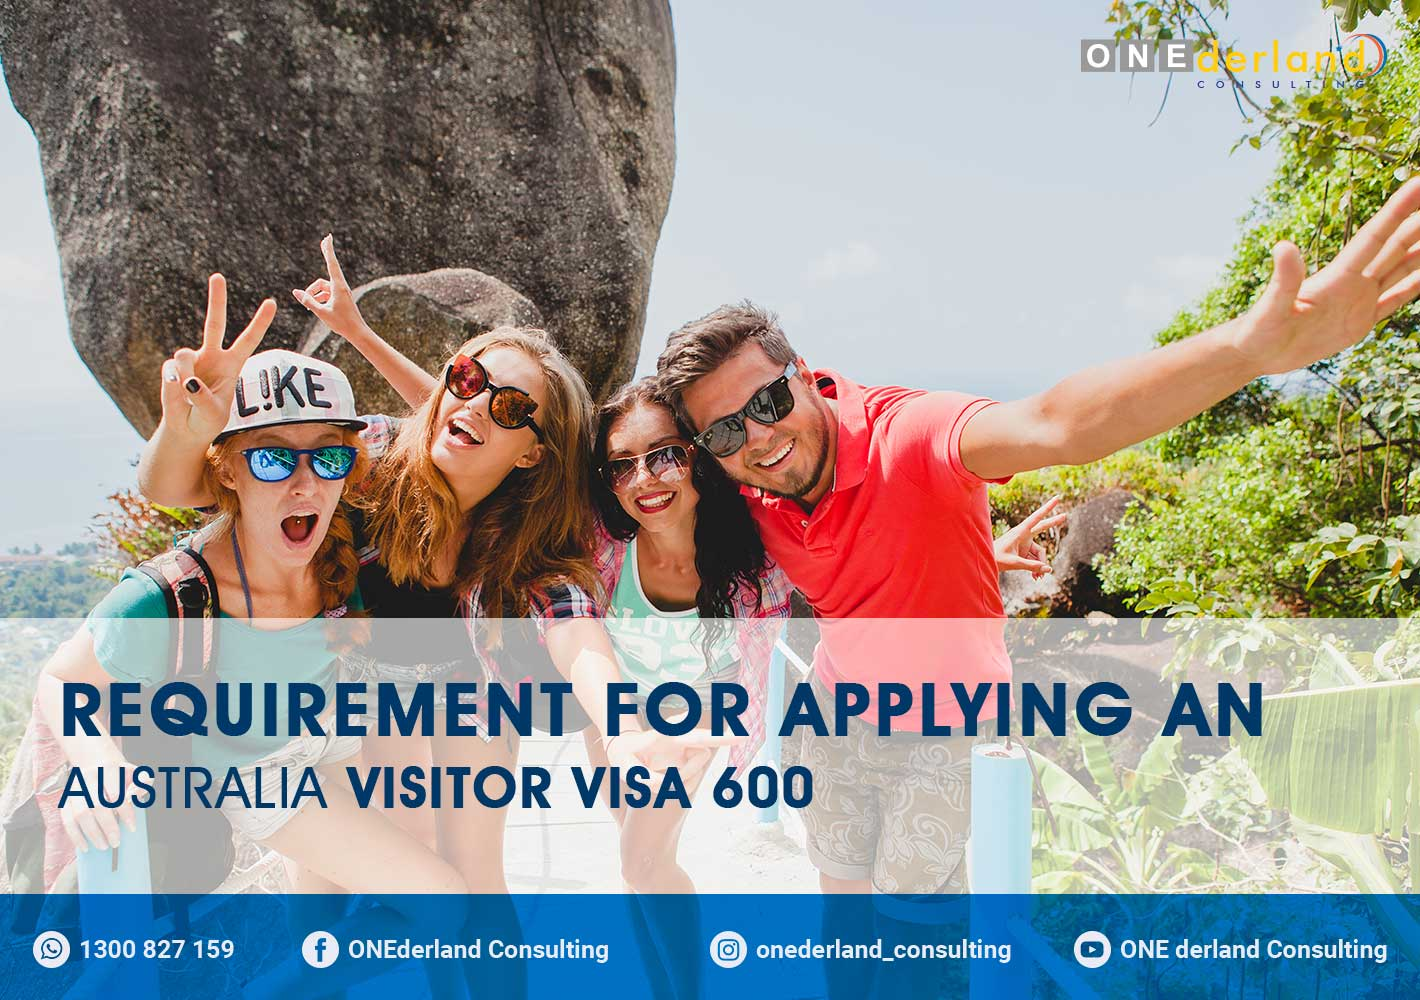 Requirement For Applying an Australia Visitor Visa 600